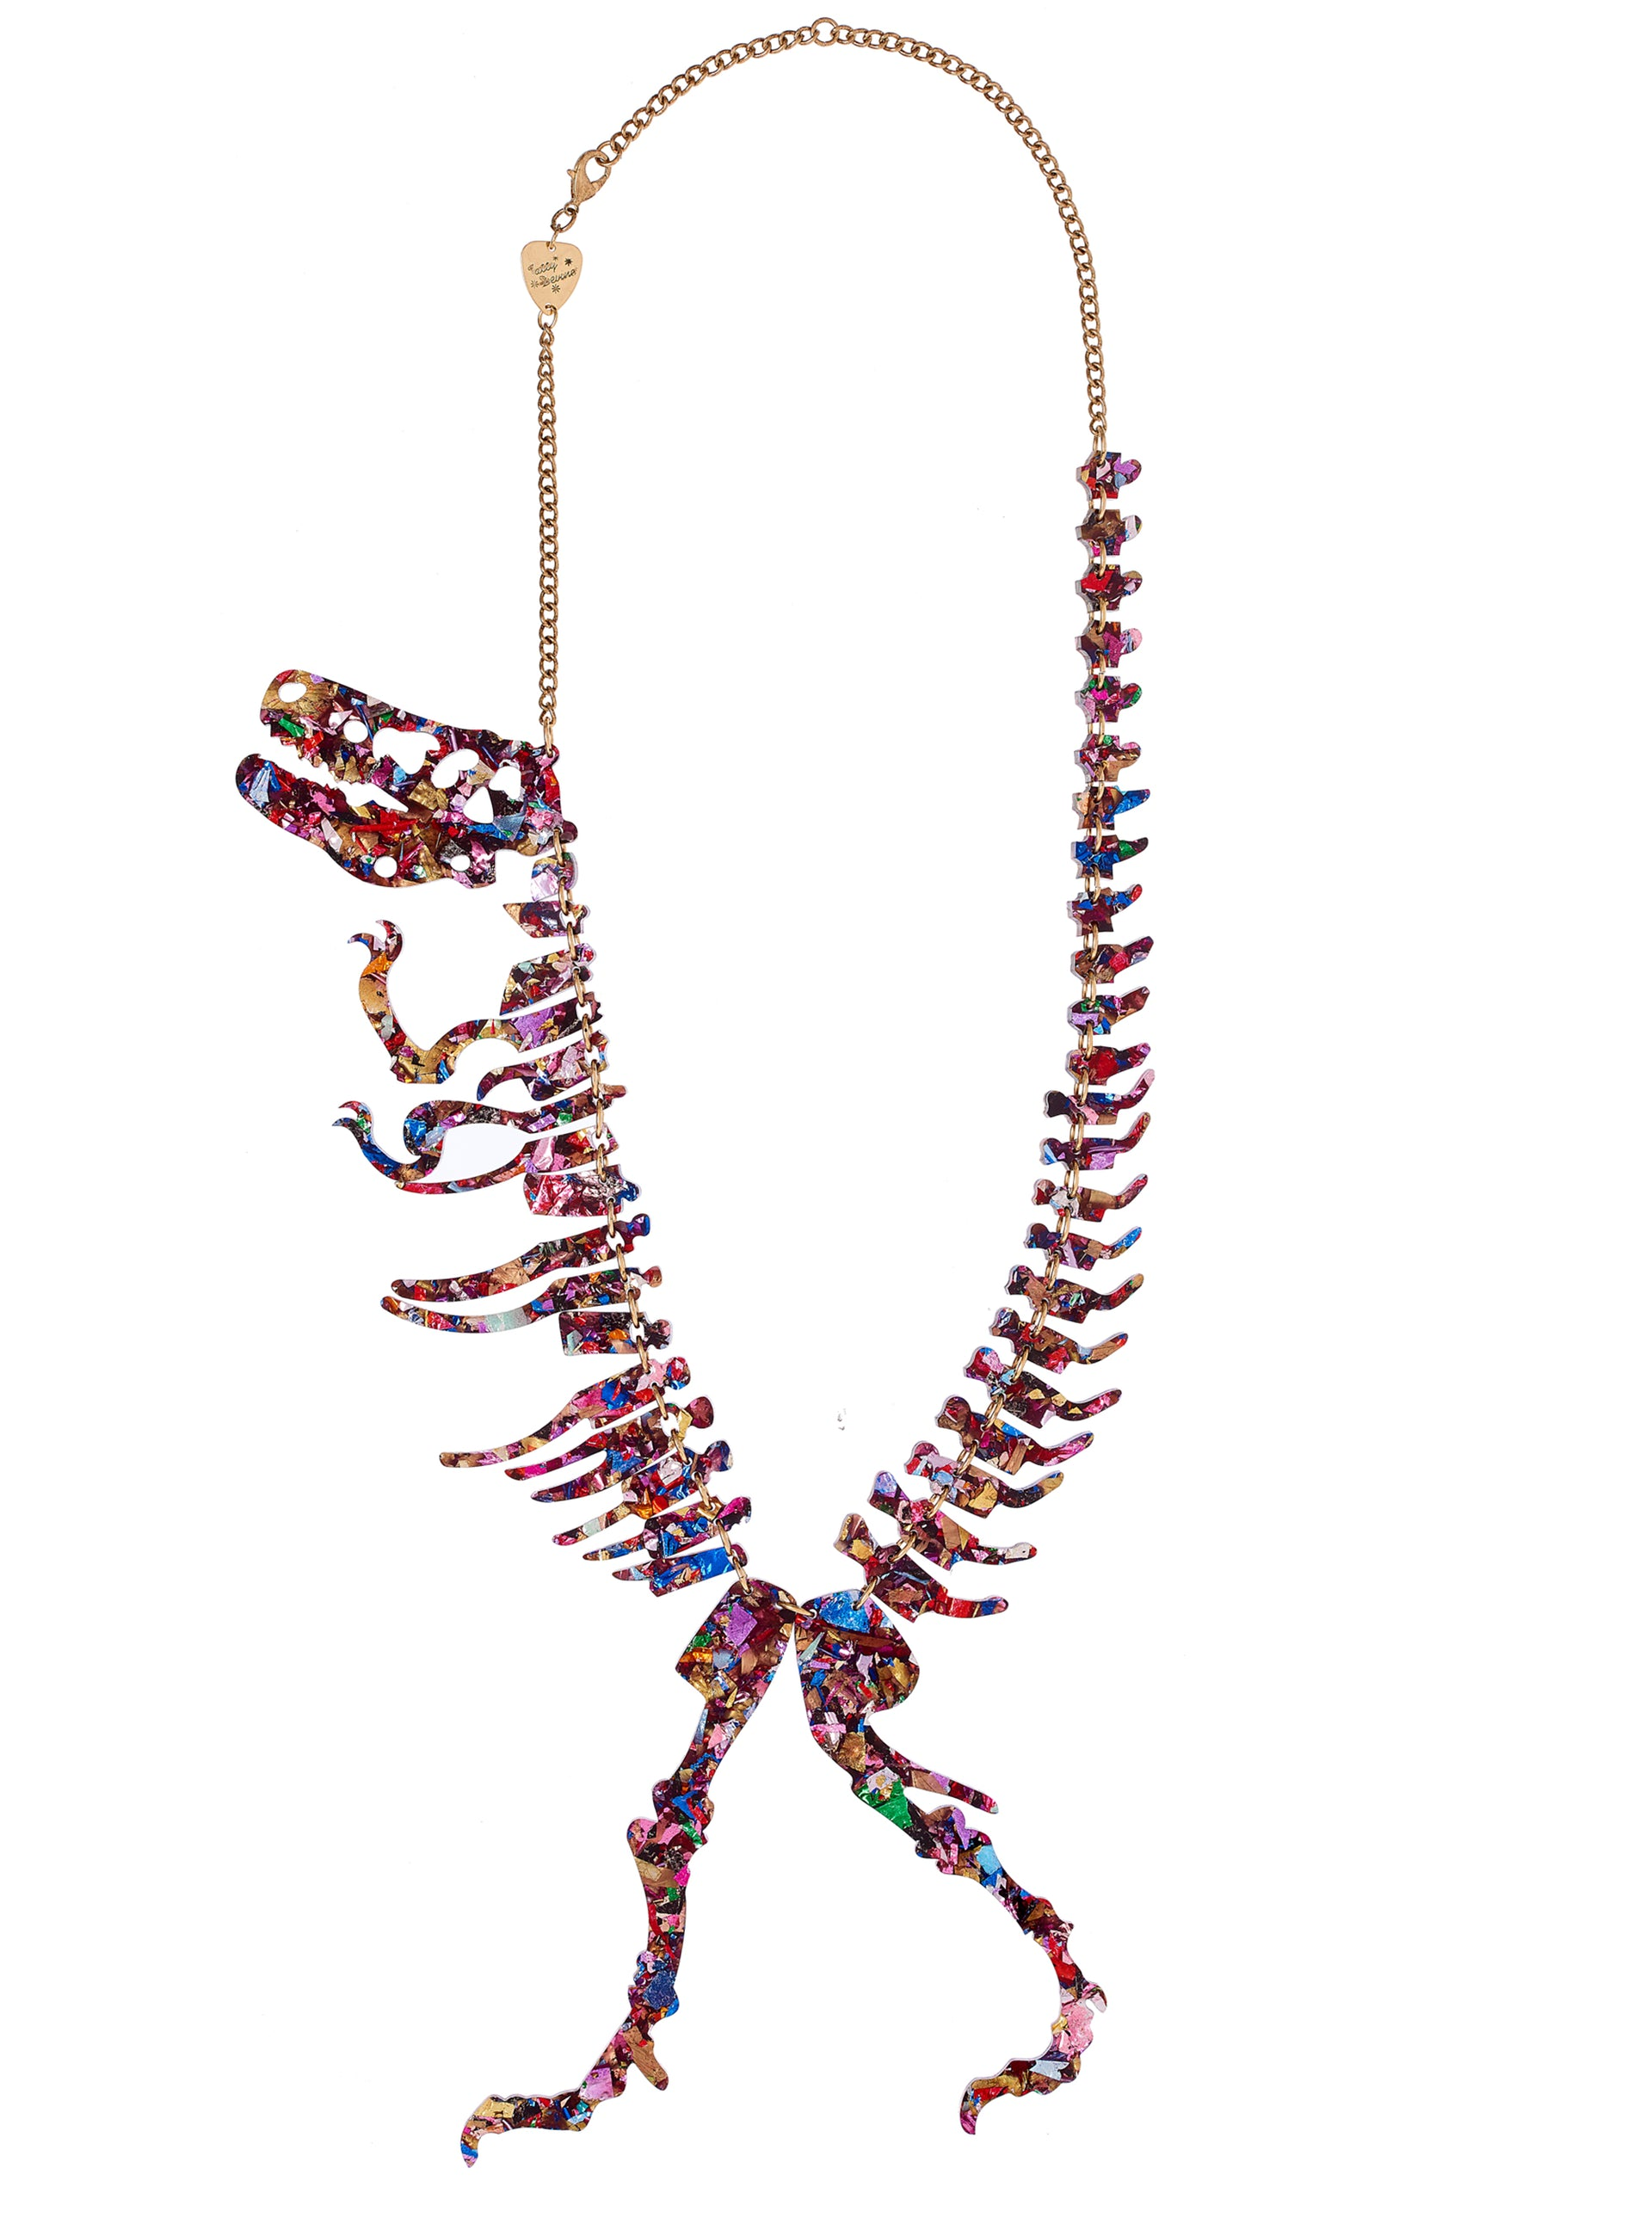 Giant Dinosaur Necklace Workshop - Foil Fossil - Lethaby Gallery